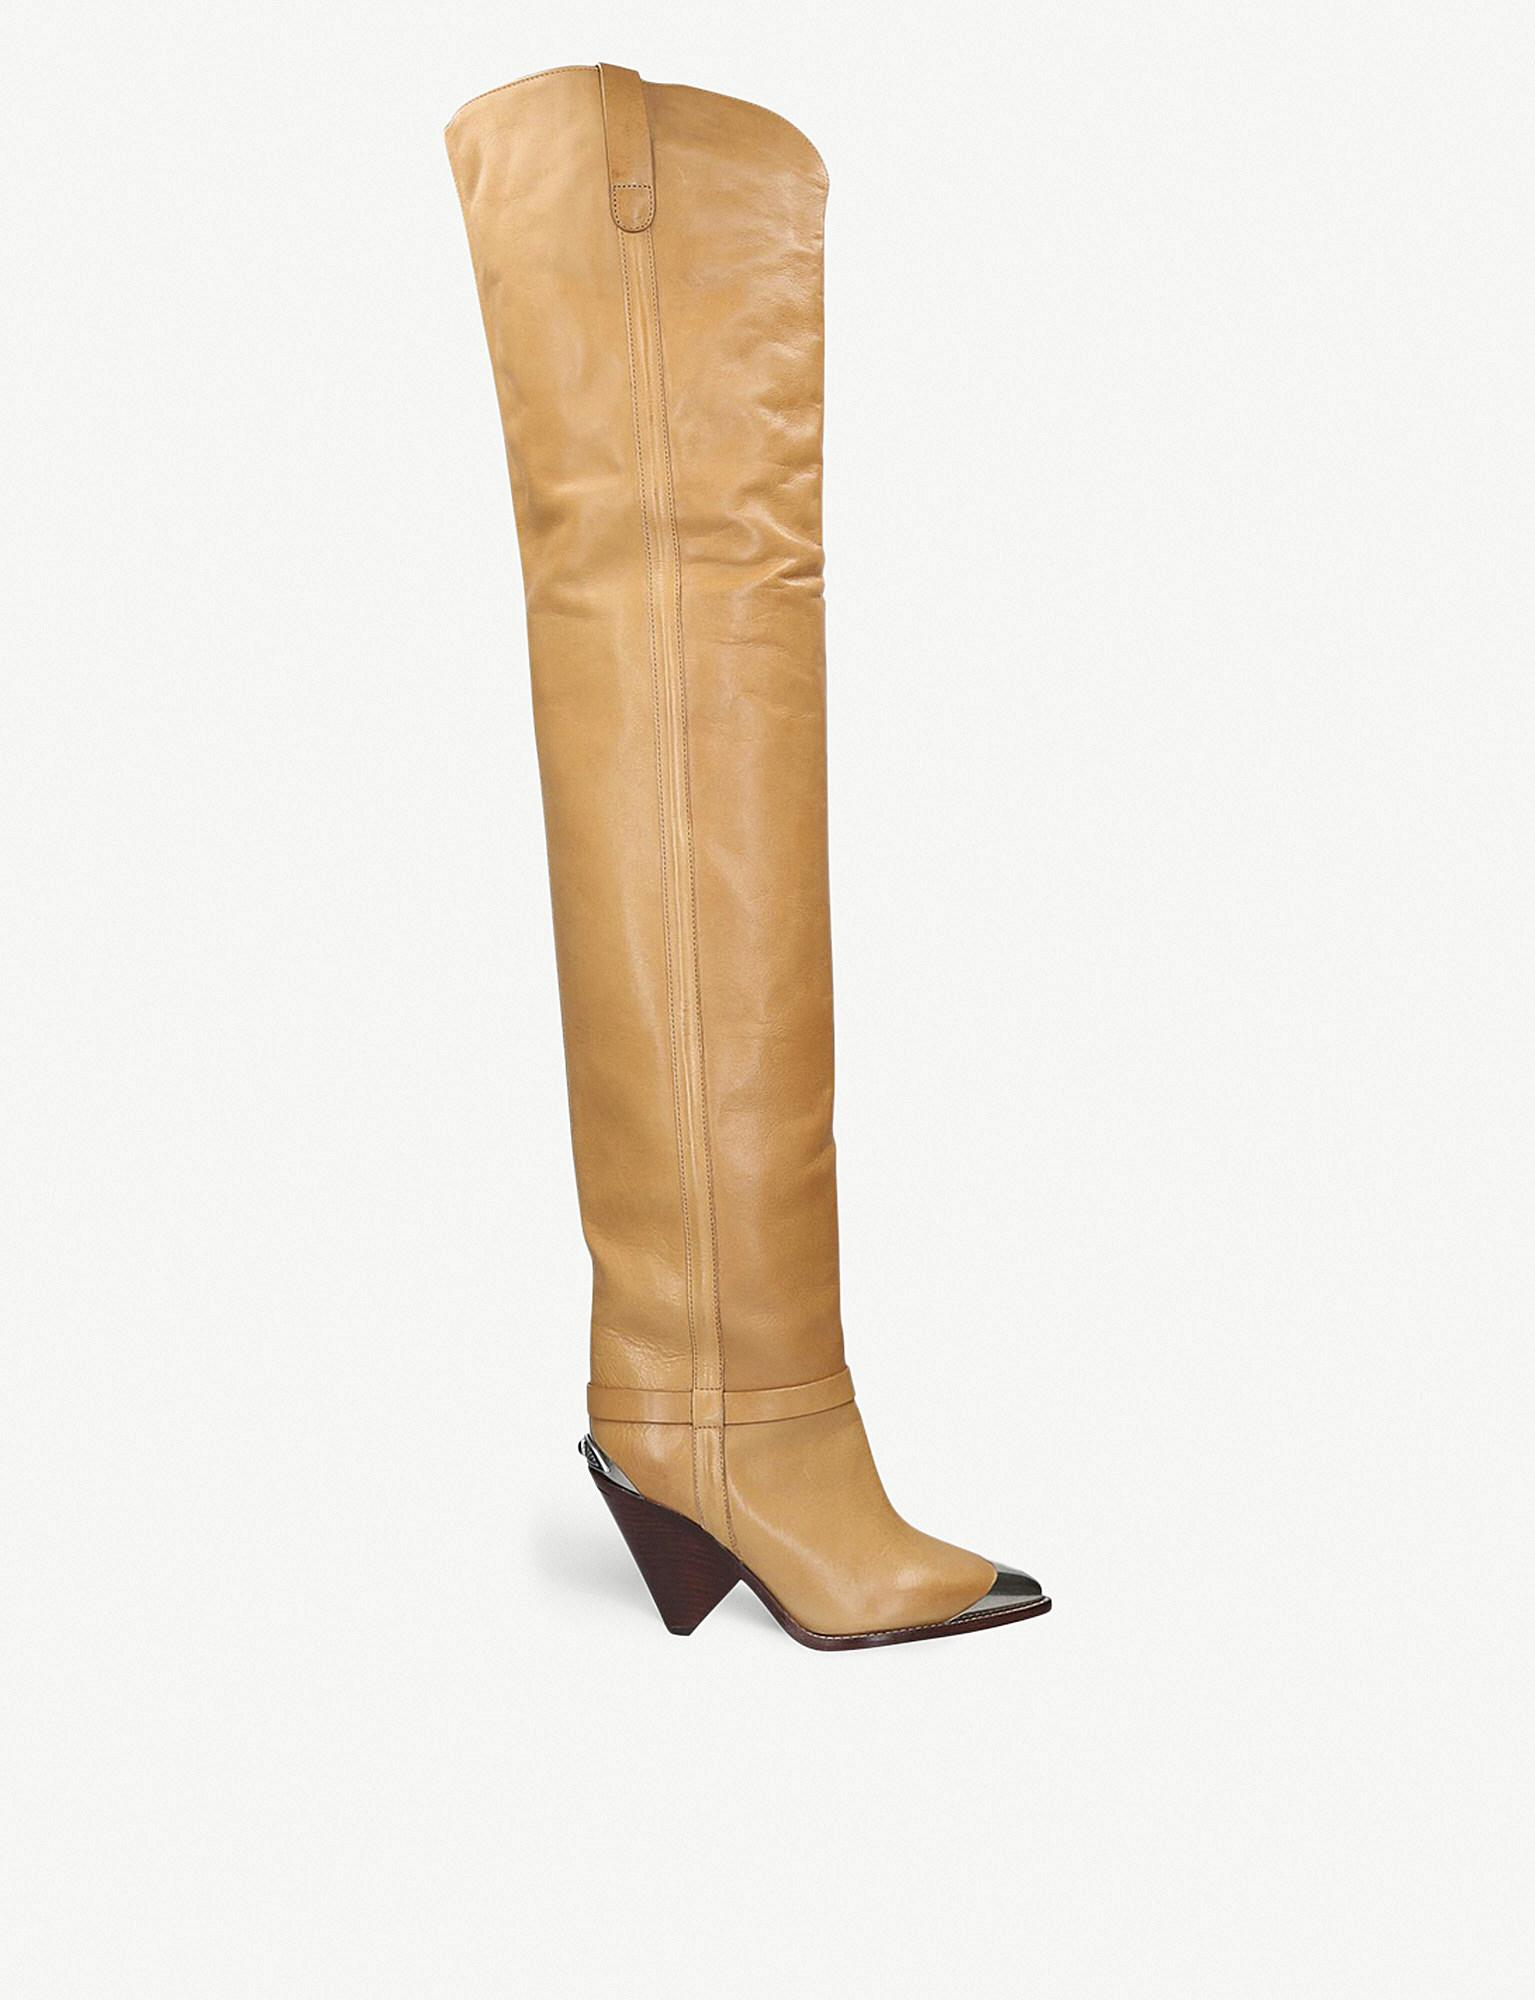 20c34f3b9f0 Isabel Marant. Women s Natural Lafsten Embellished Leather Over-the-knee  Boots